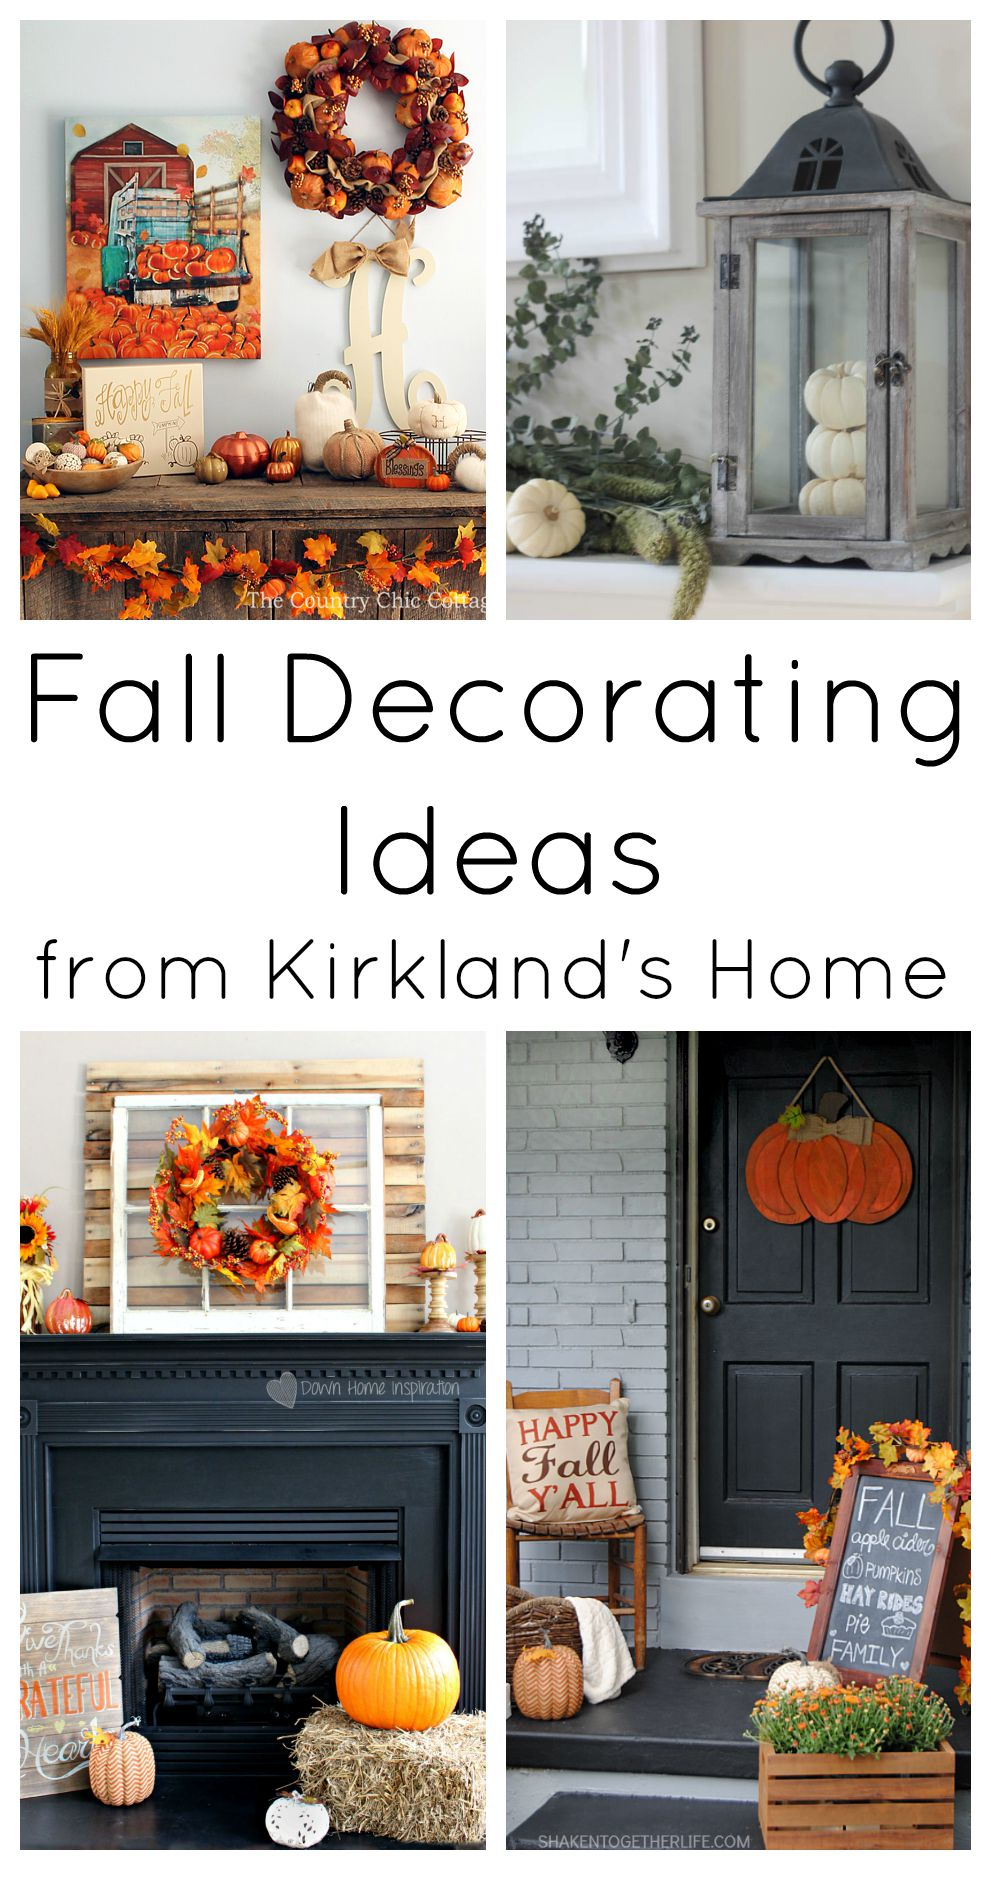 Great fall decorating ideas using items from Kirkland's Home.